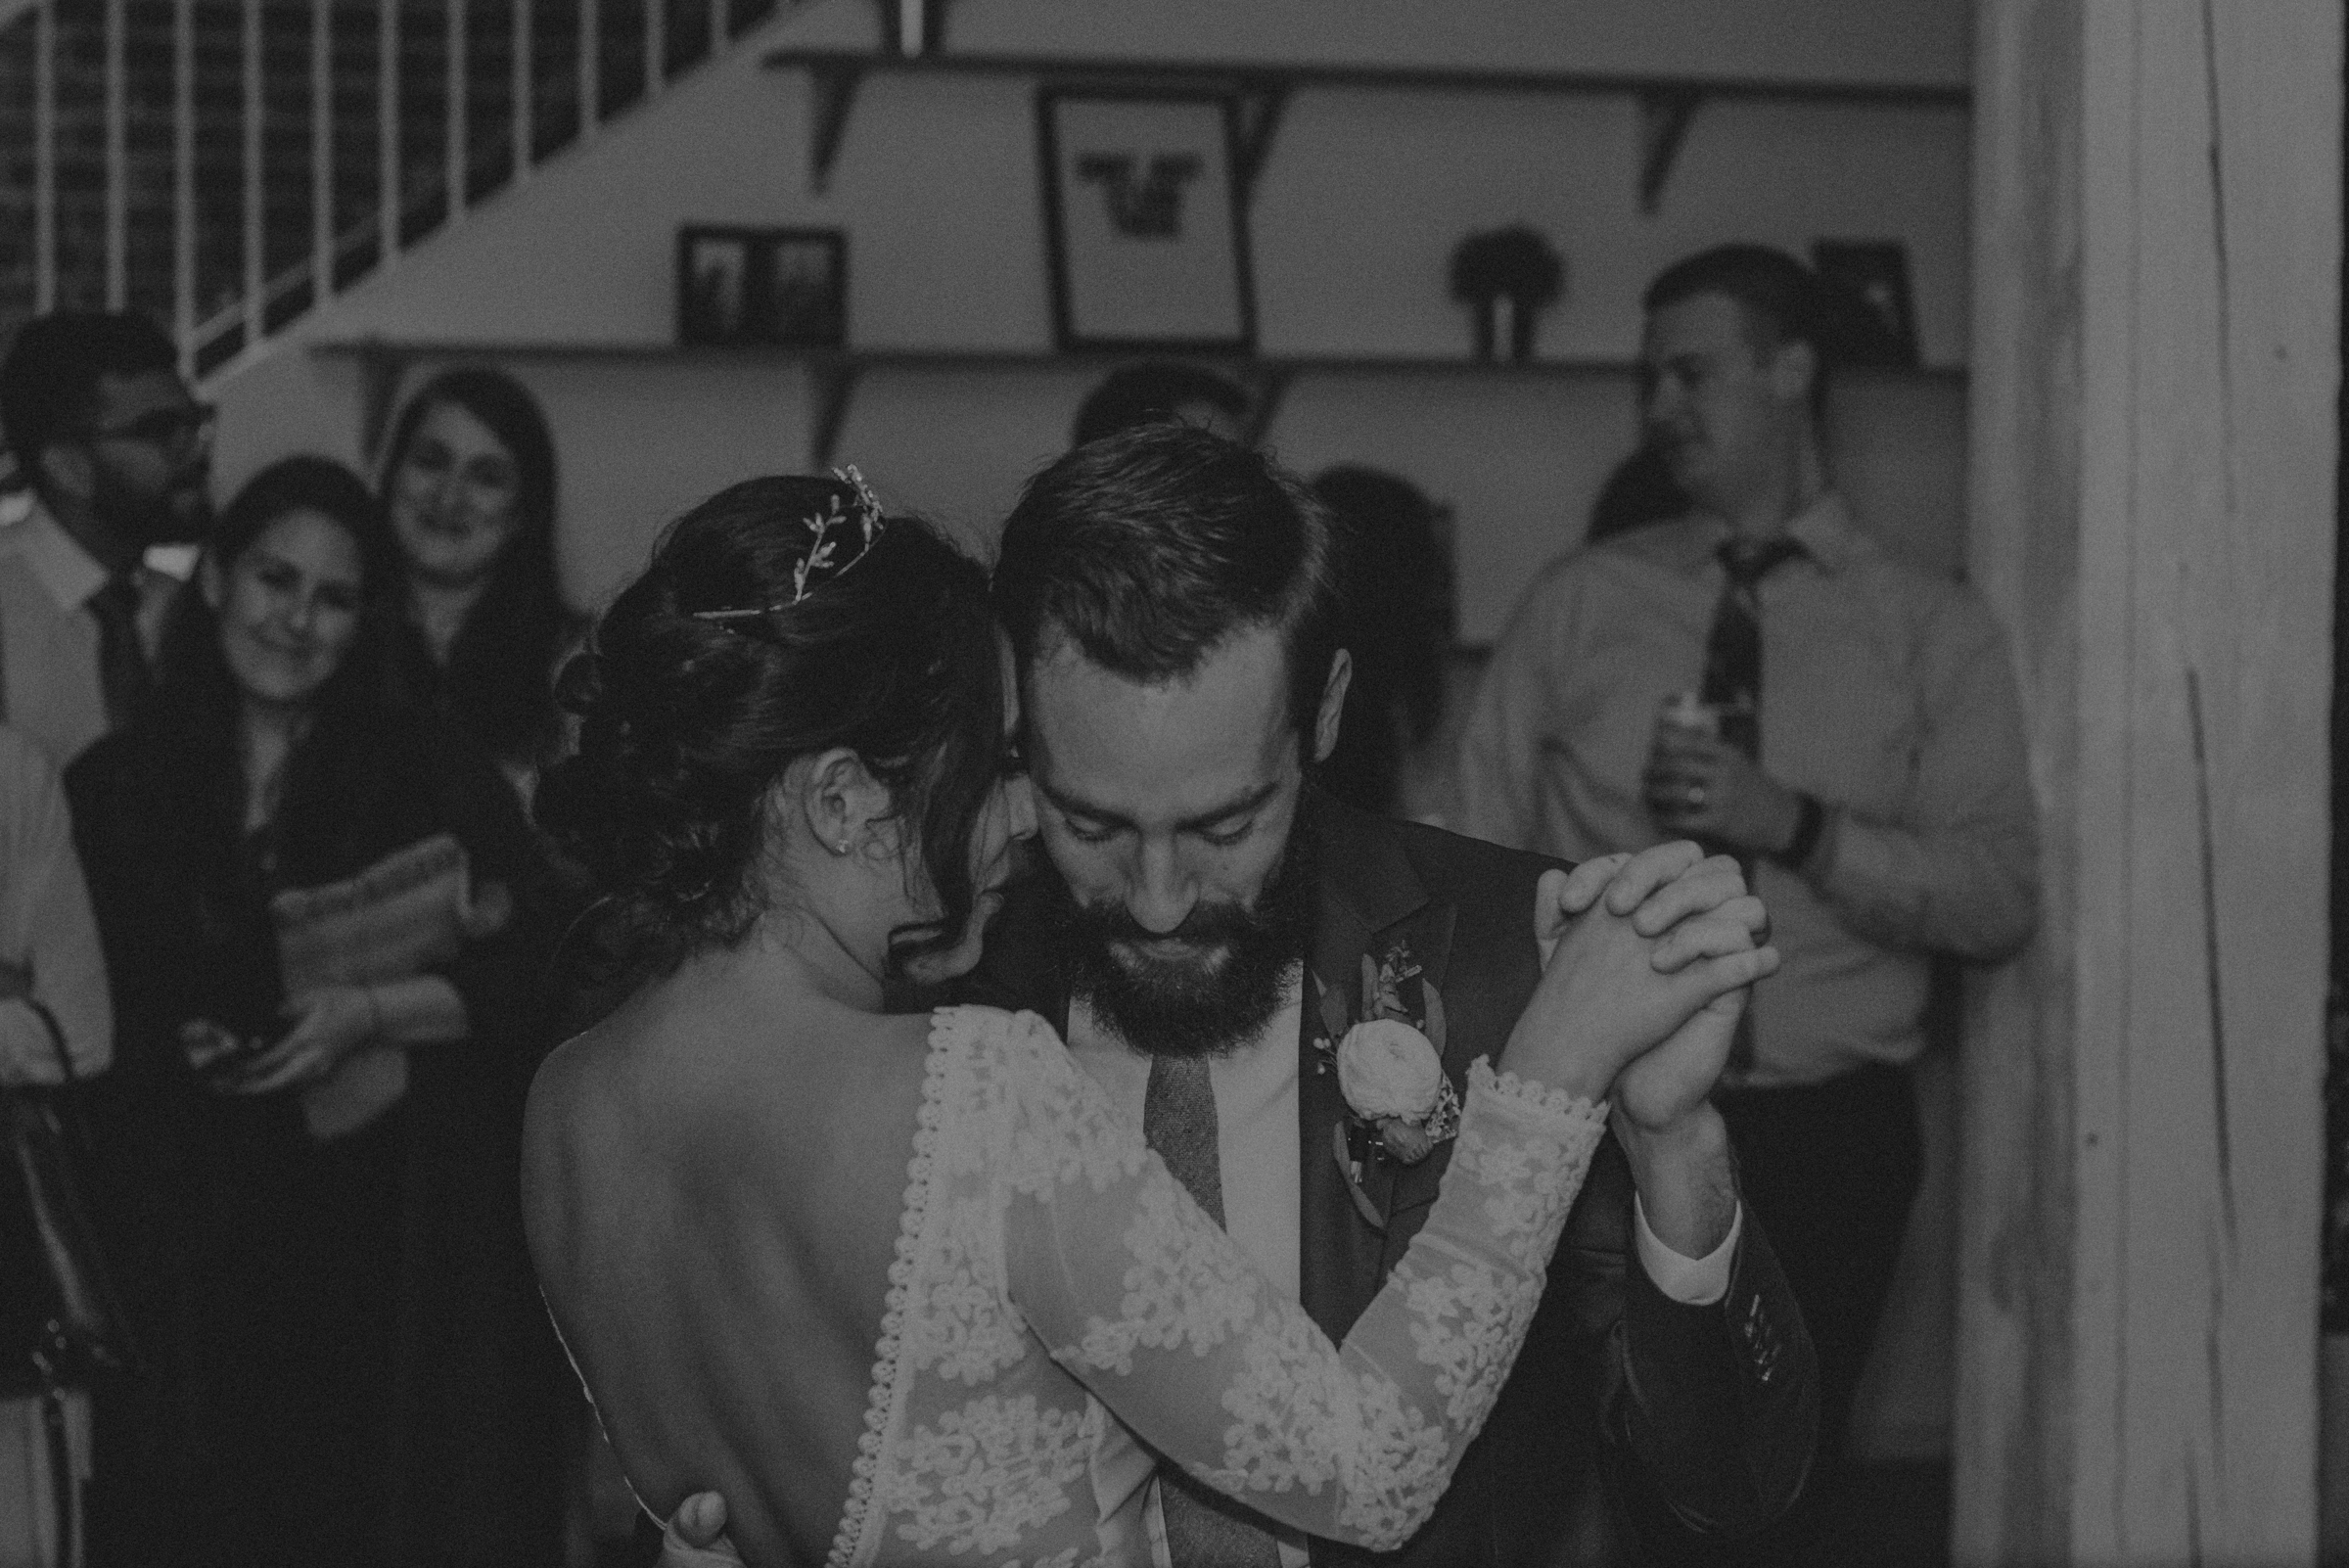 Isaiah + Taylor Photography - The Unique Space Wedding, Los Angeles Wedding Photography 156.jpg